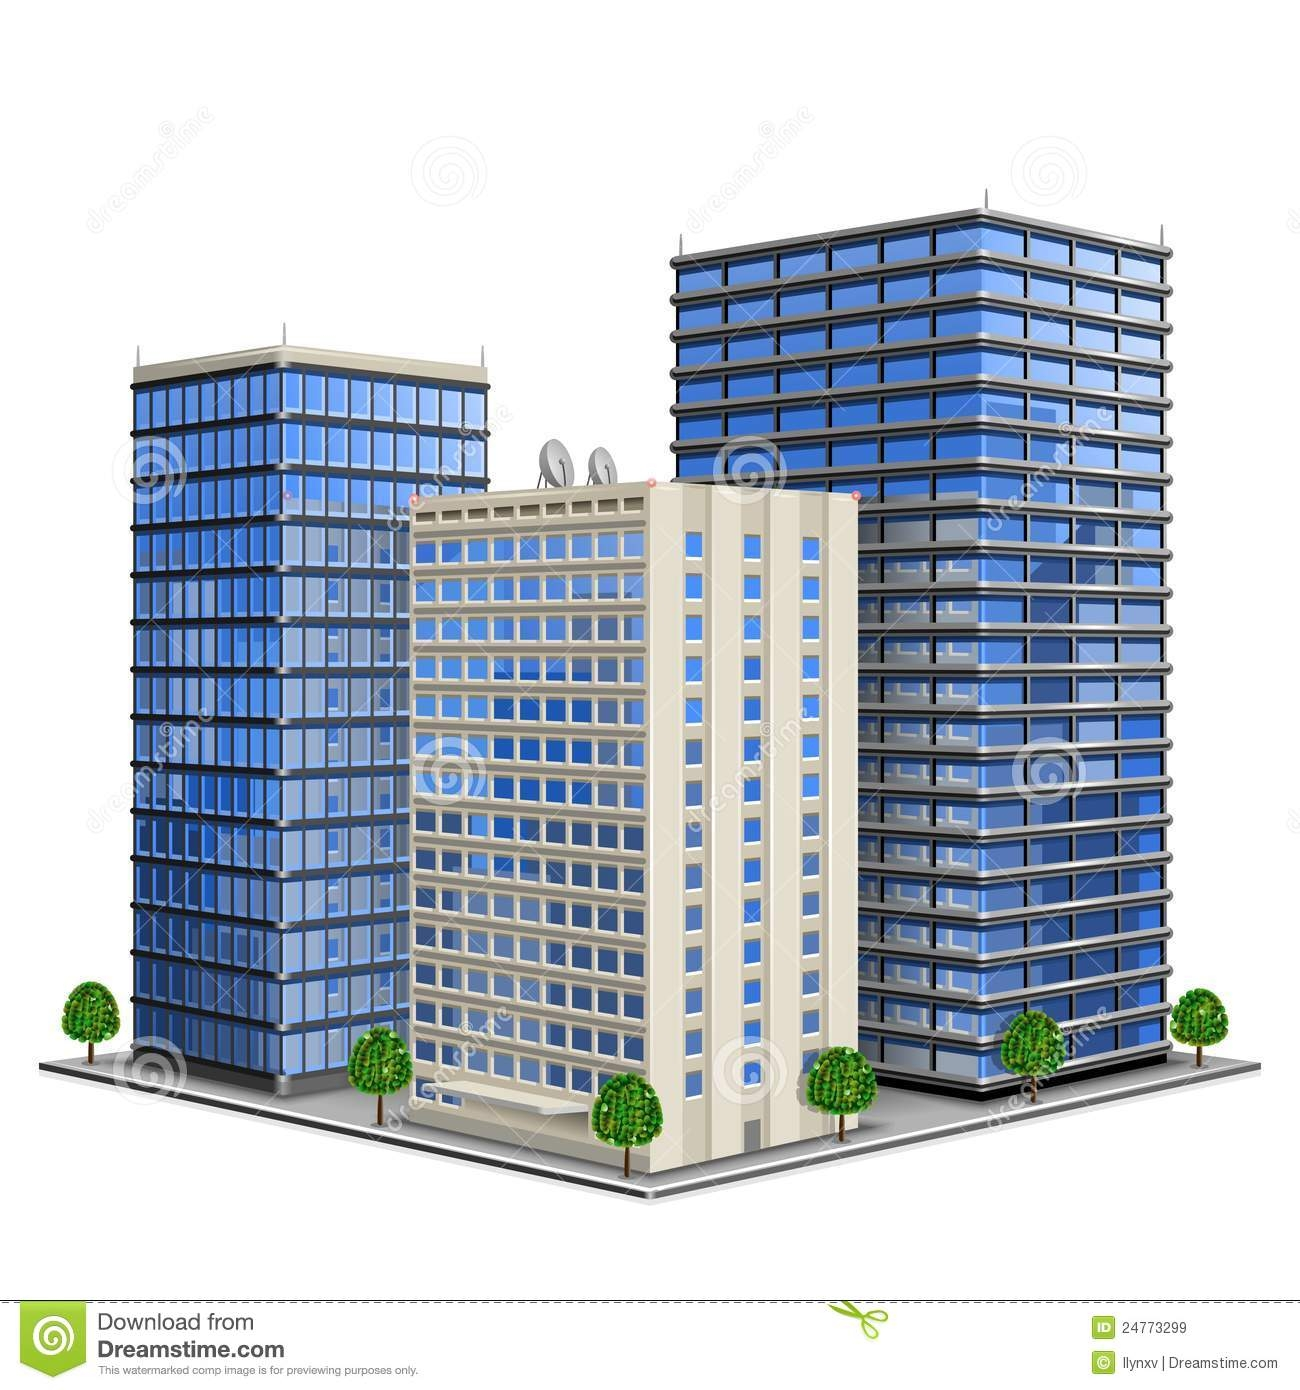 Building clipart jpg transparent library Building Clipart & Building Clip Art Images - ClipartALL.com jpg transparent library